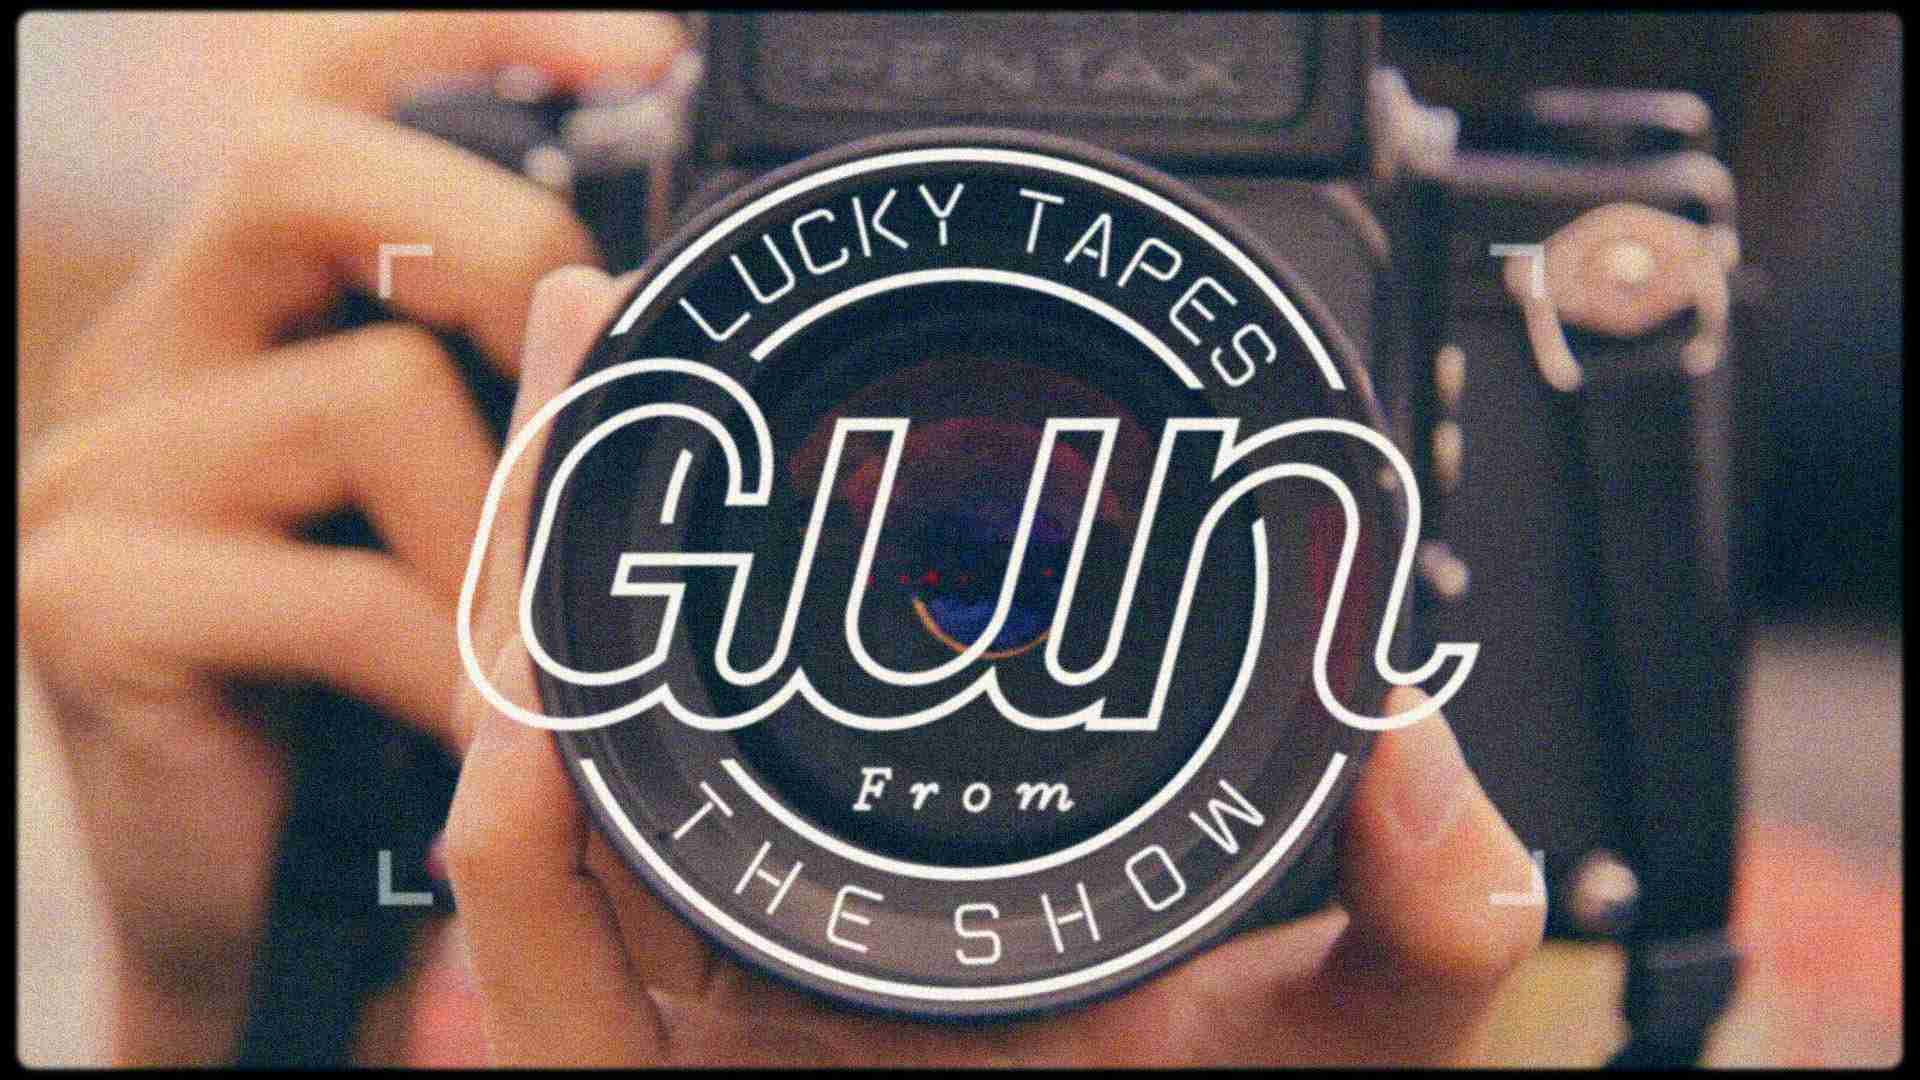 LUCKY TAPES / Gun - YouTube